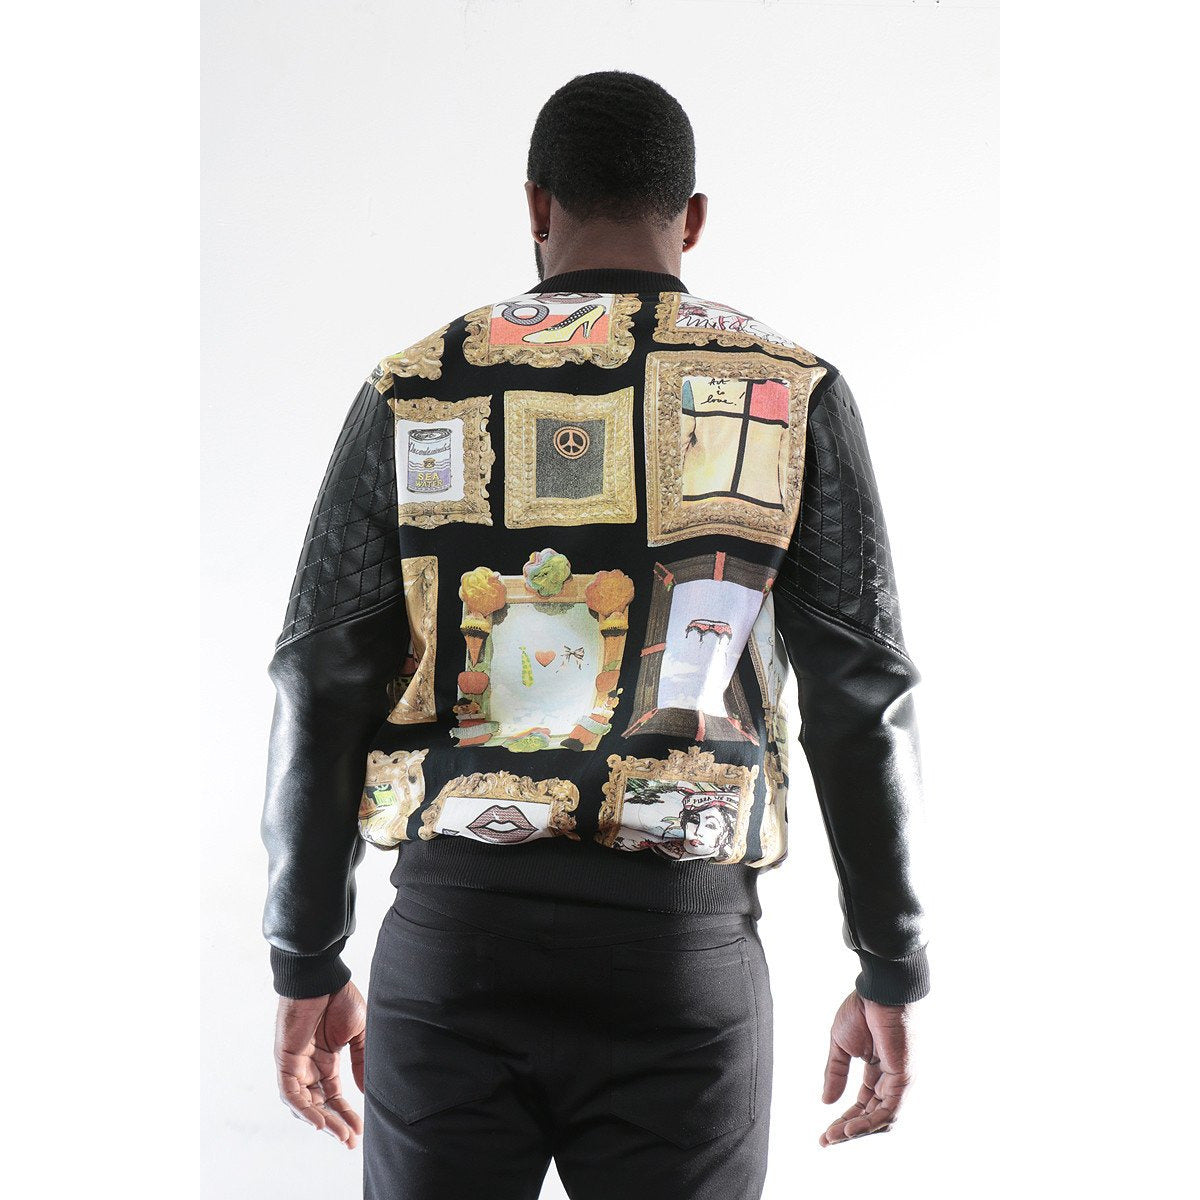 Bomber Jacket with Modern image imprint